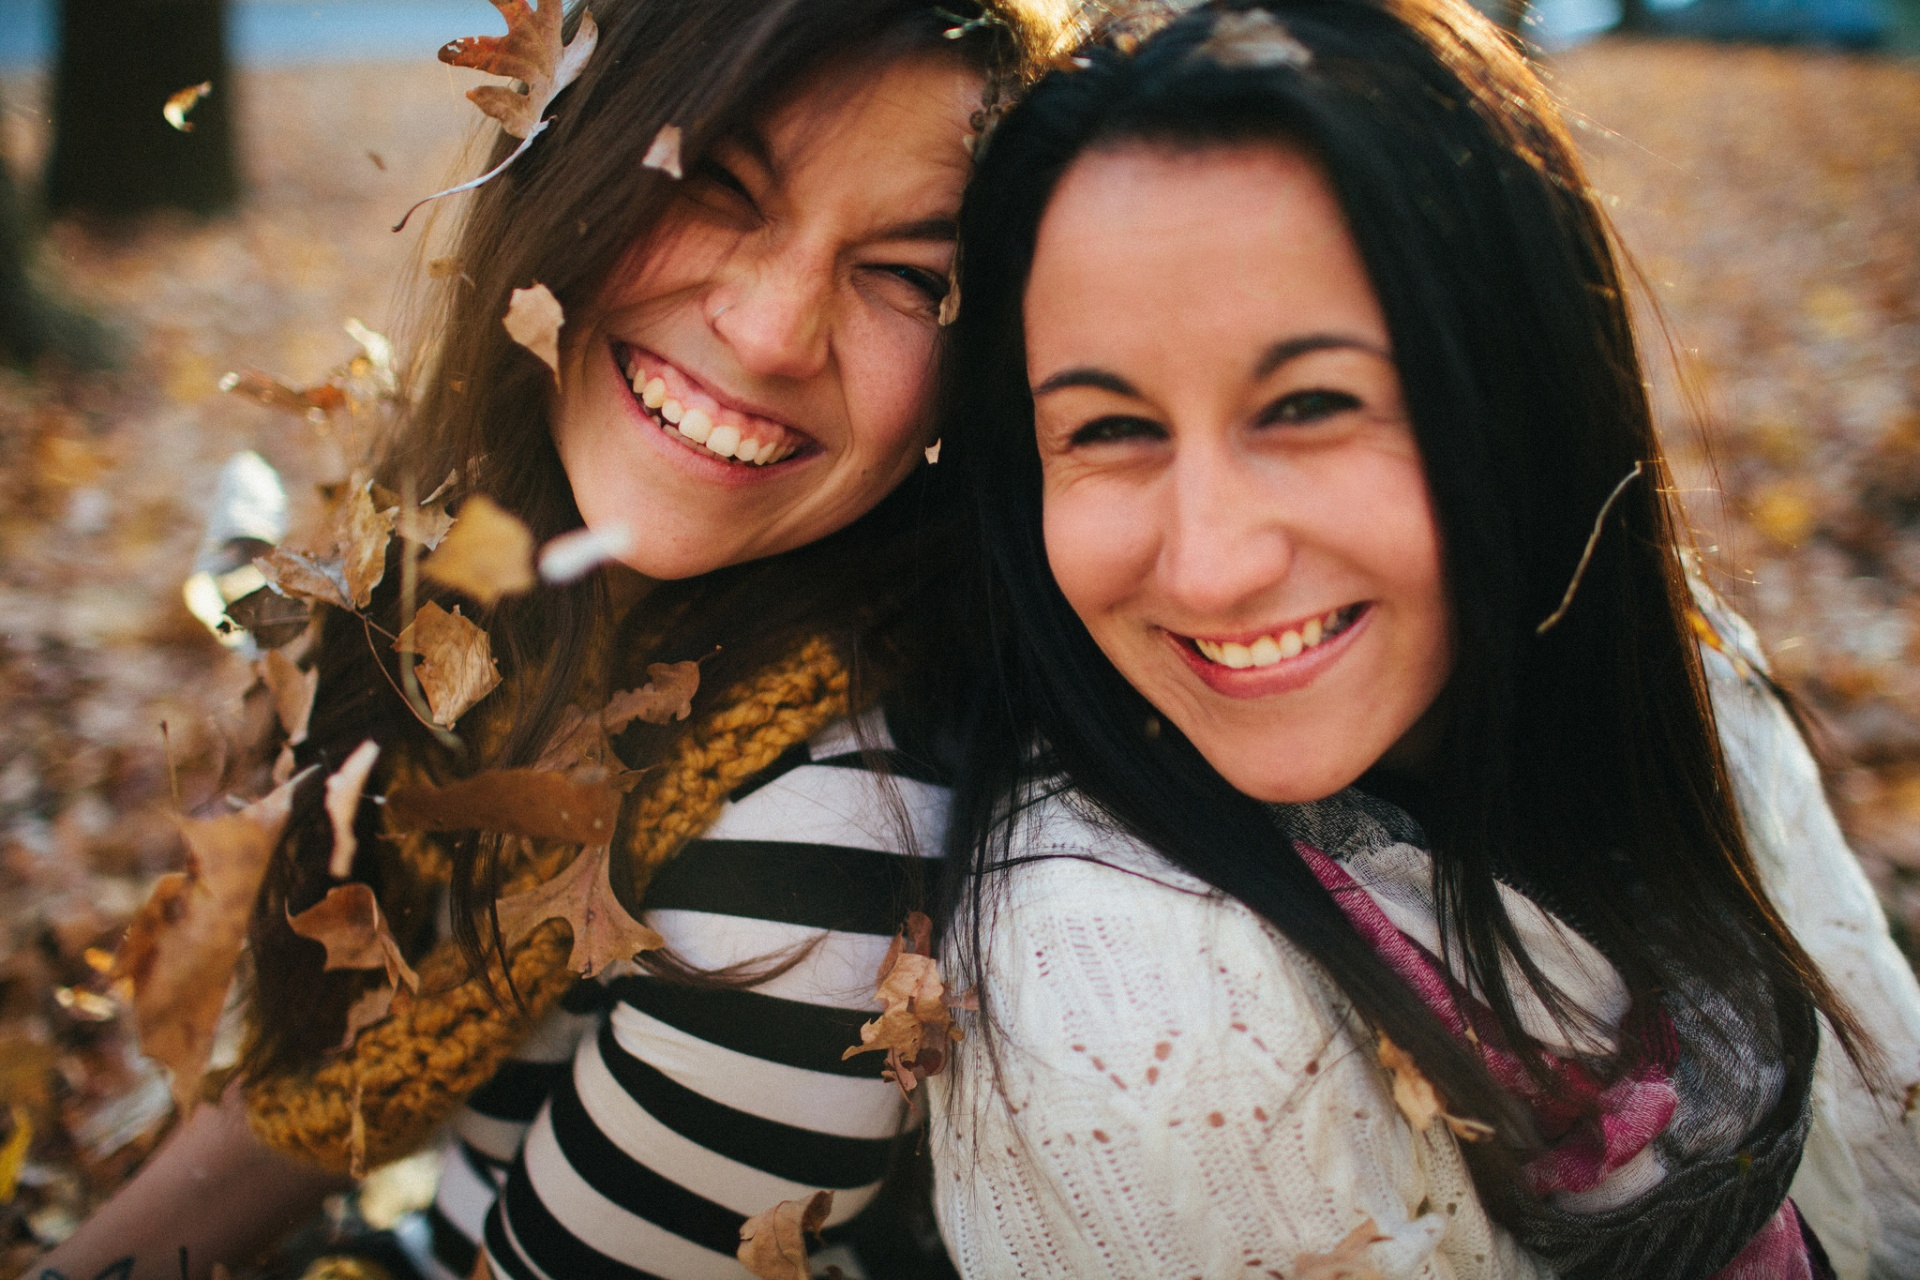 fun things to do with your friends this fall, fall ideas, girlfriends